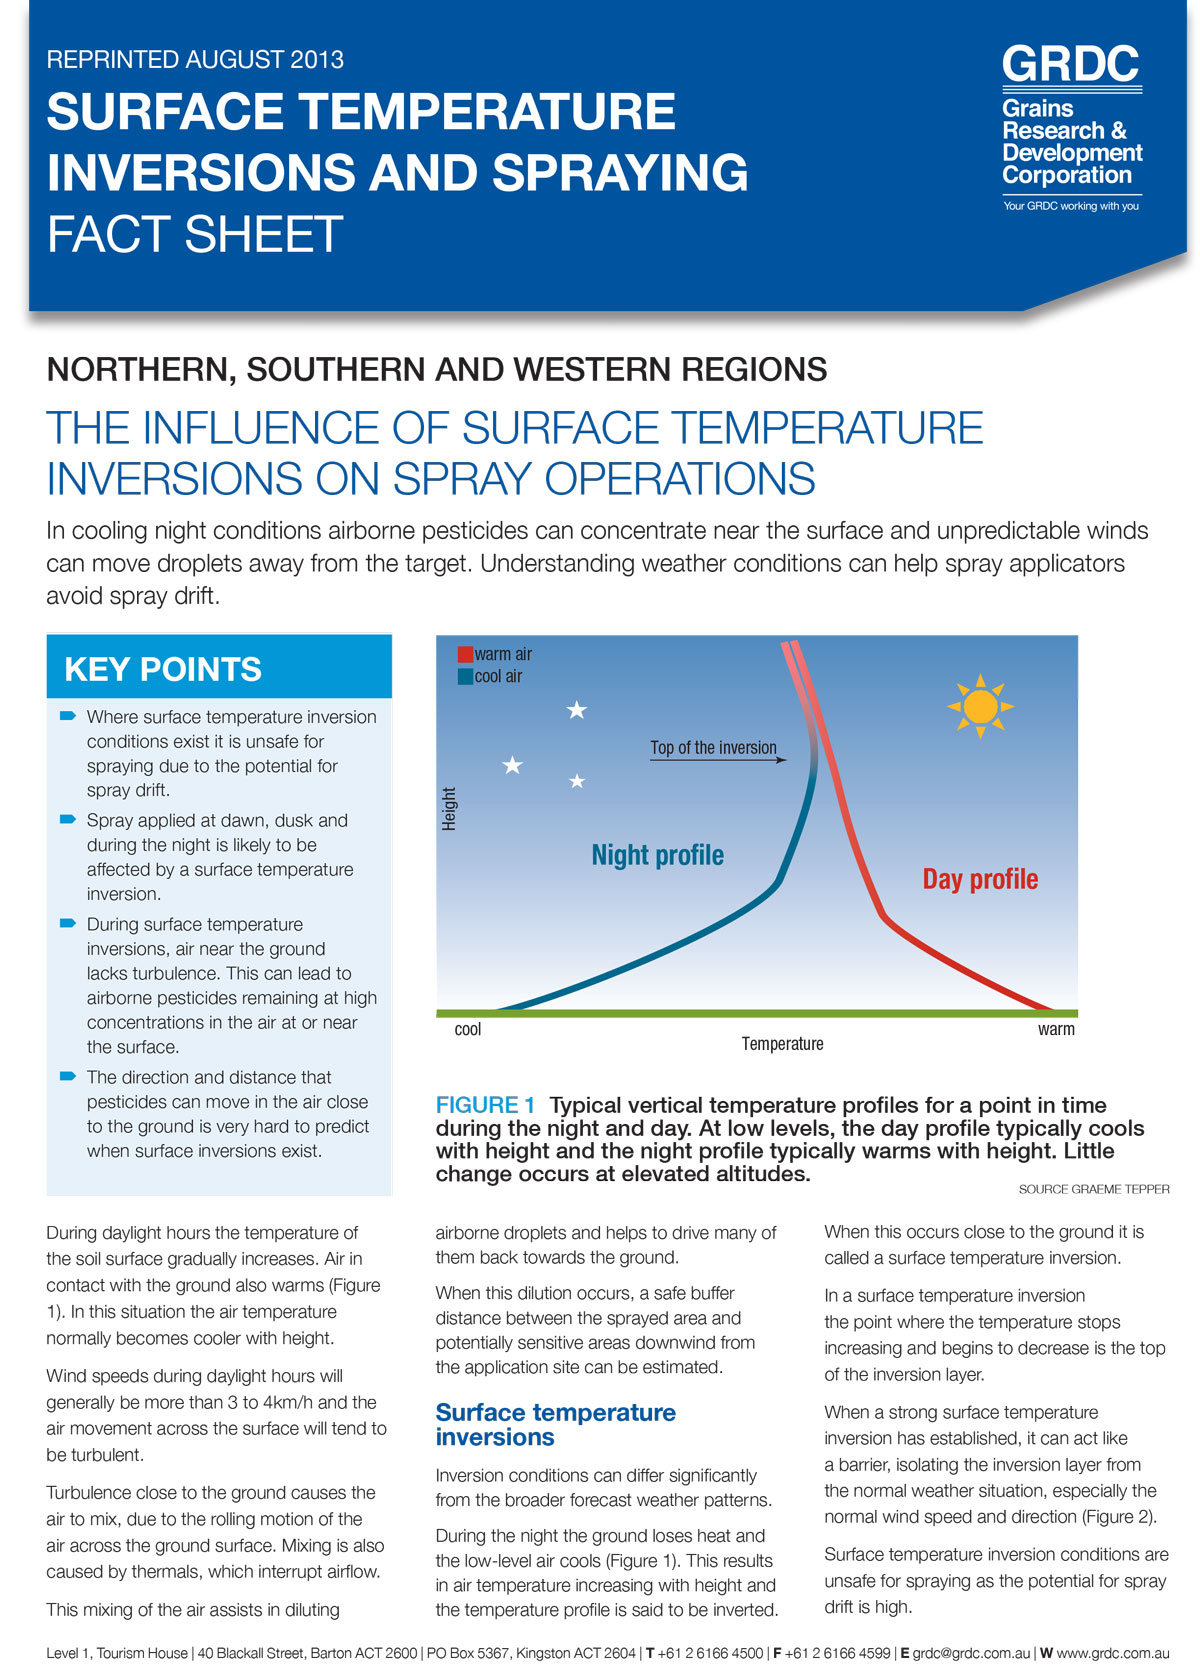 Image of the Surface temperature inversions and spraying surface temperature inversions and spraying Fact Sheet